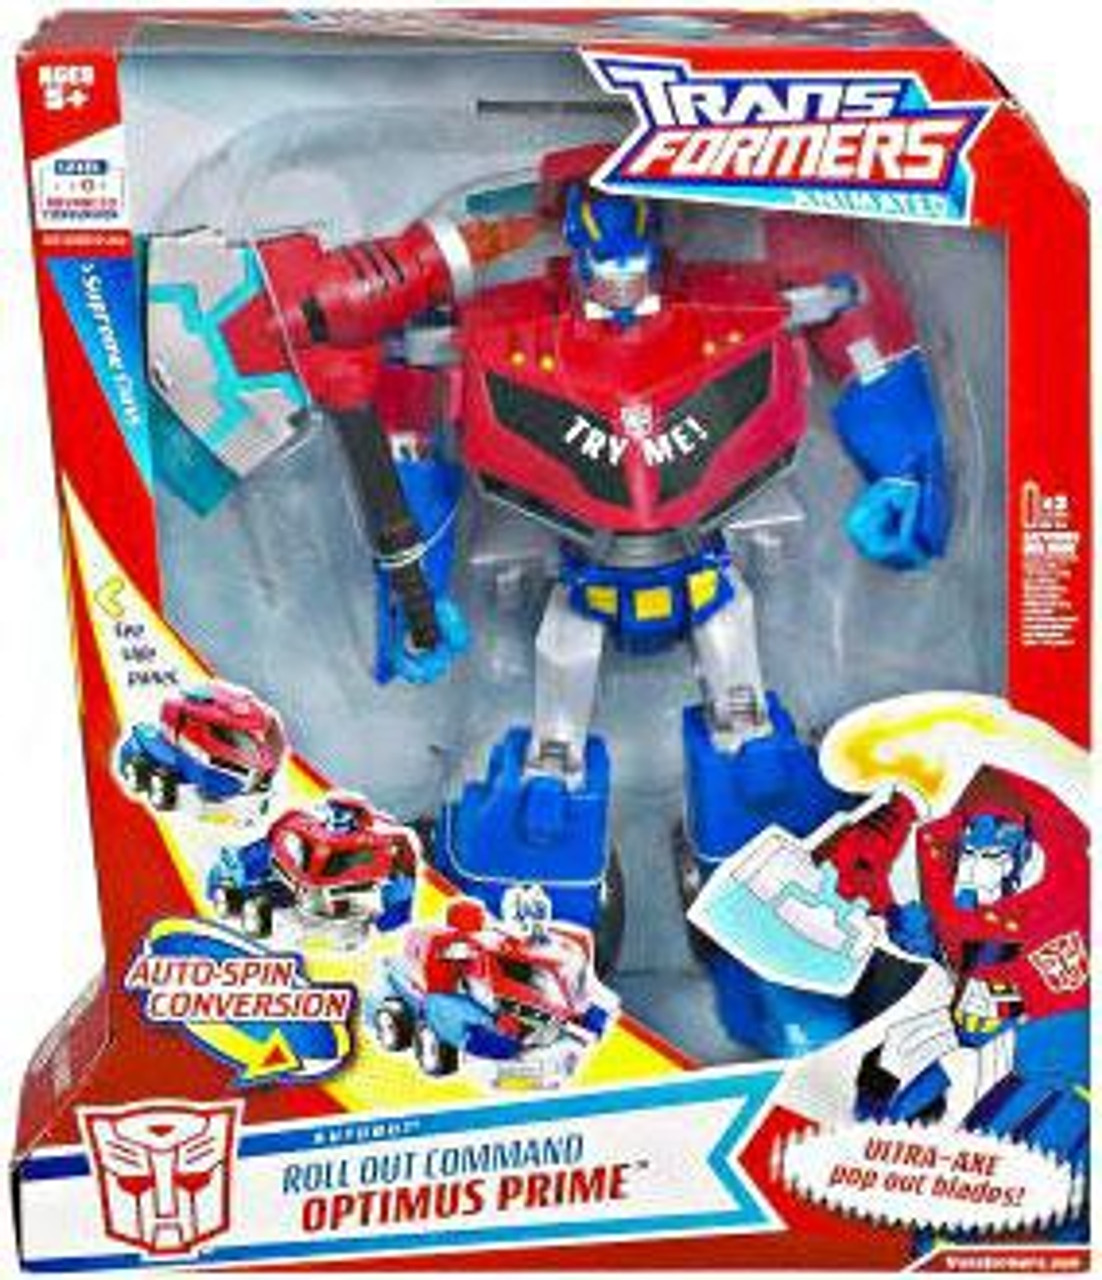 Transformers Animated Roll Out Command Optimus Prime Supreme Action Figure